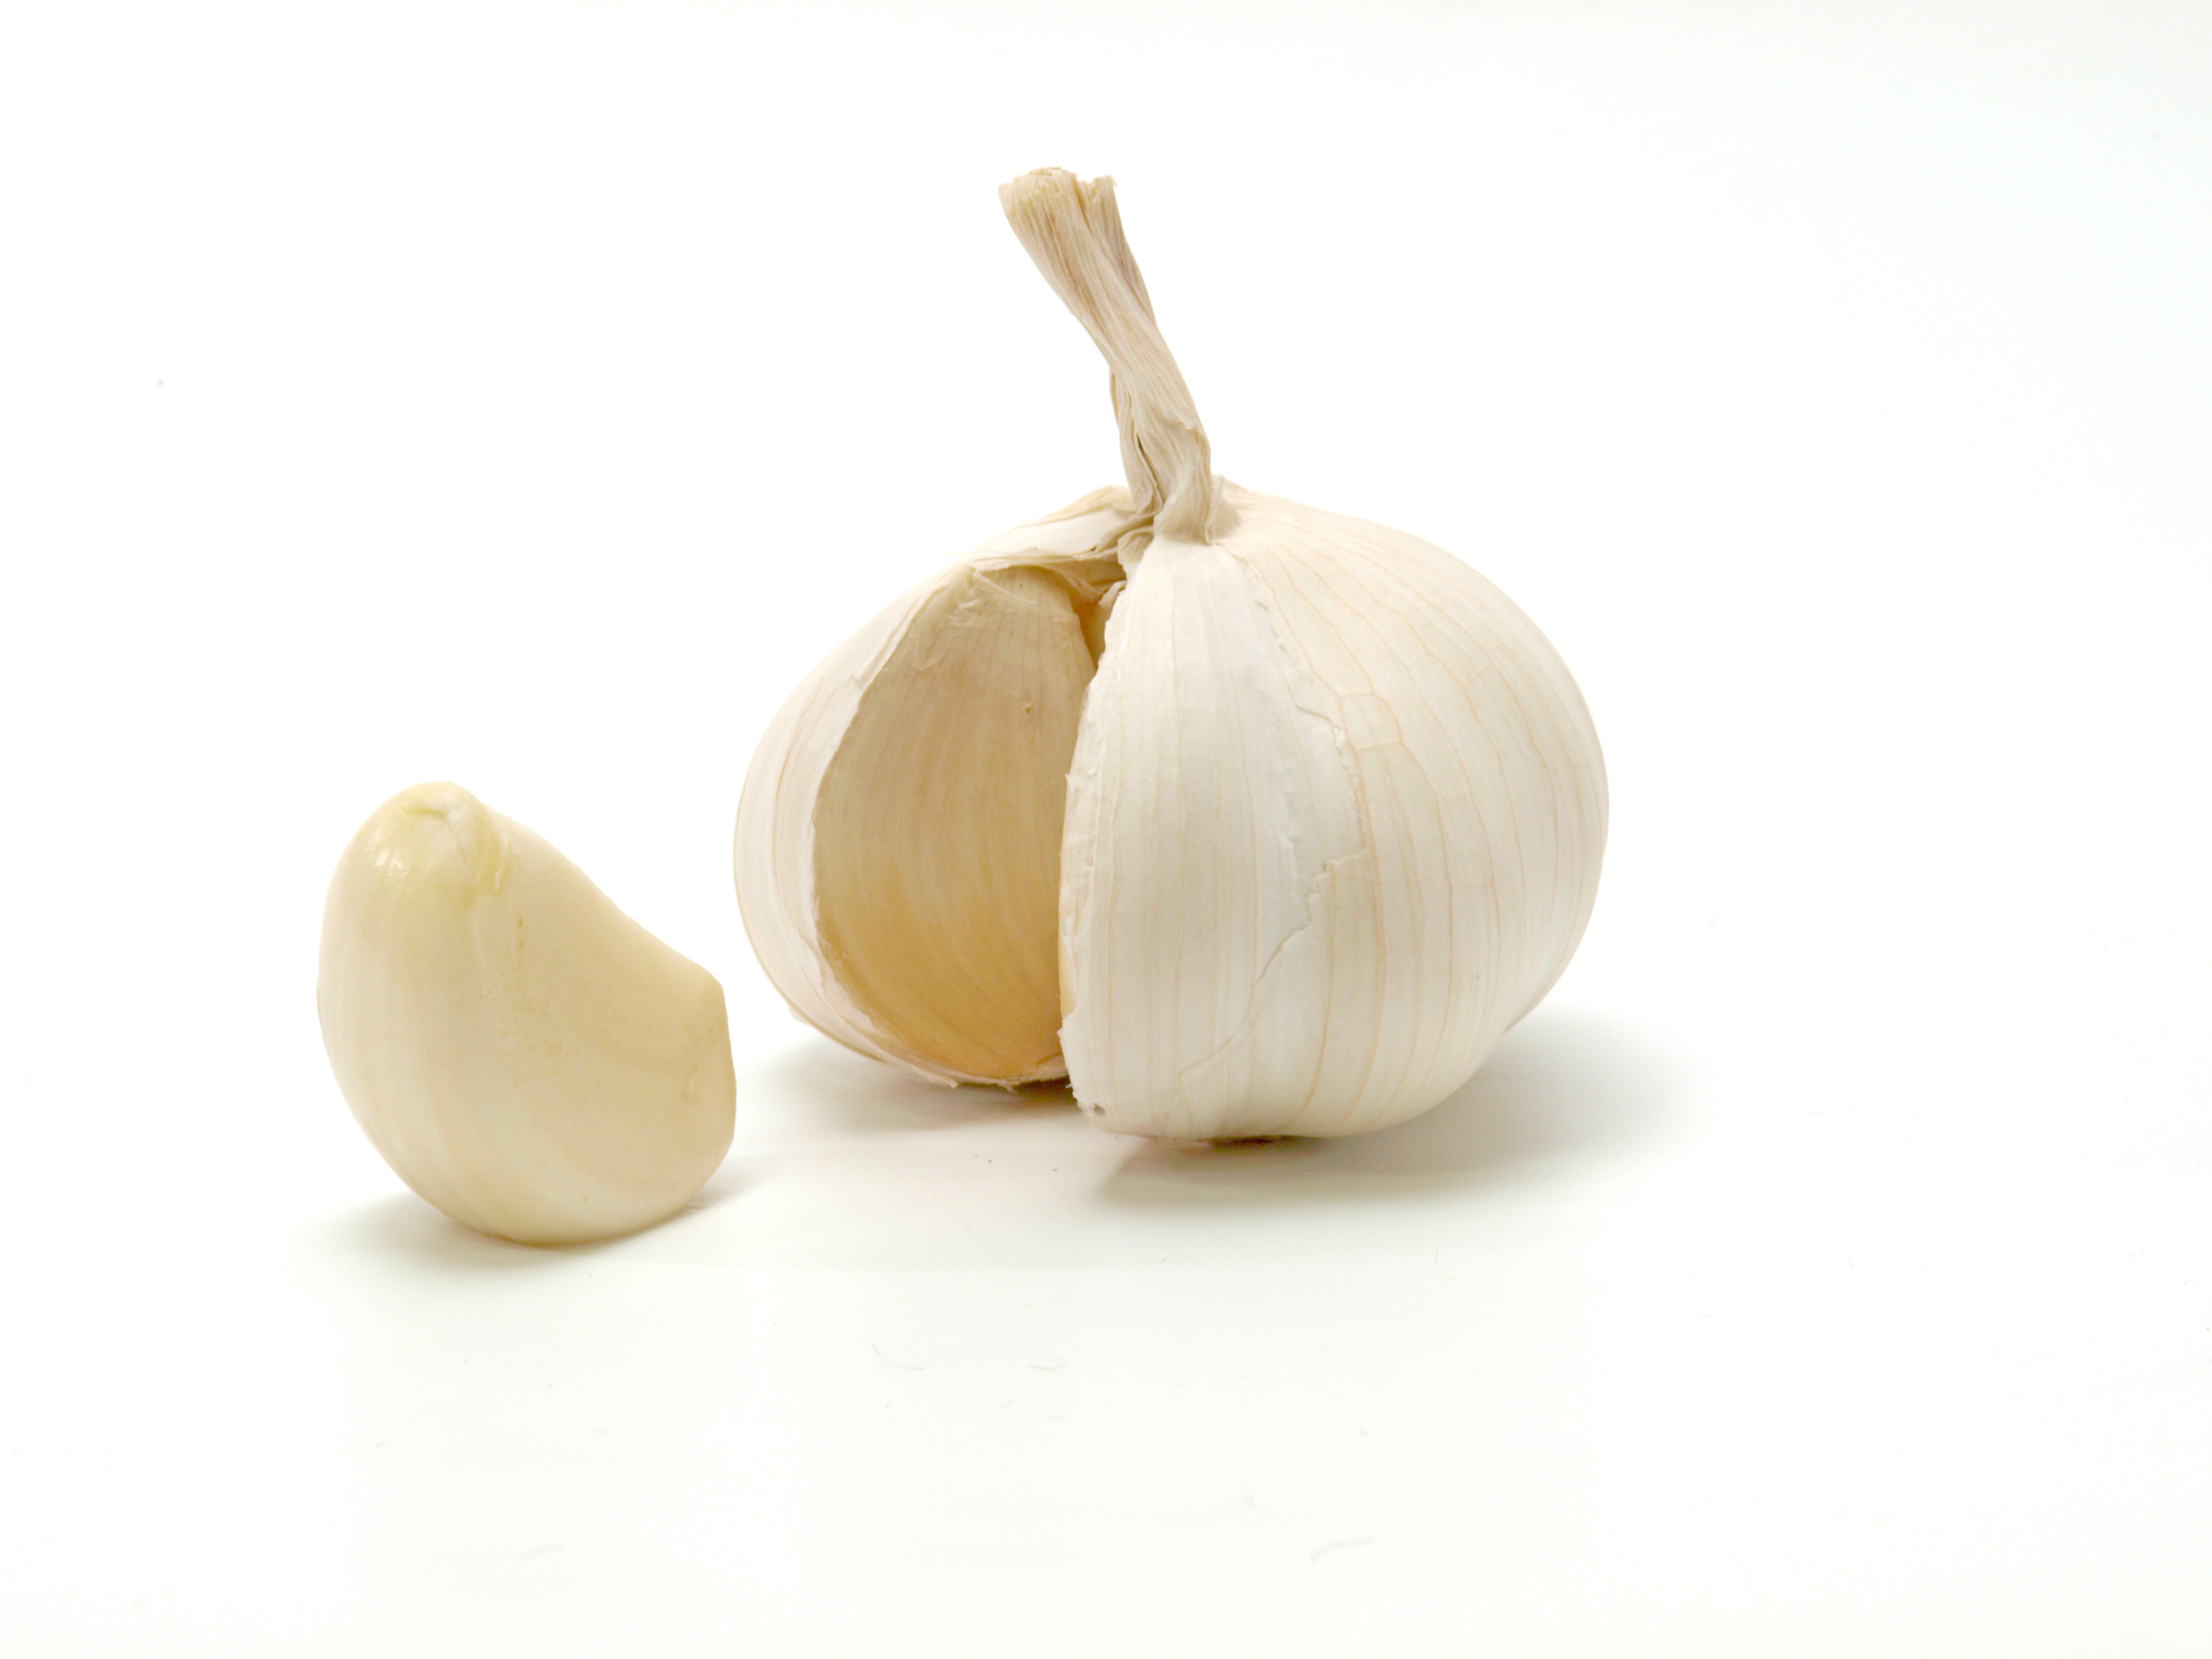 File:Opened garlic bulb with garlic clove.jpg